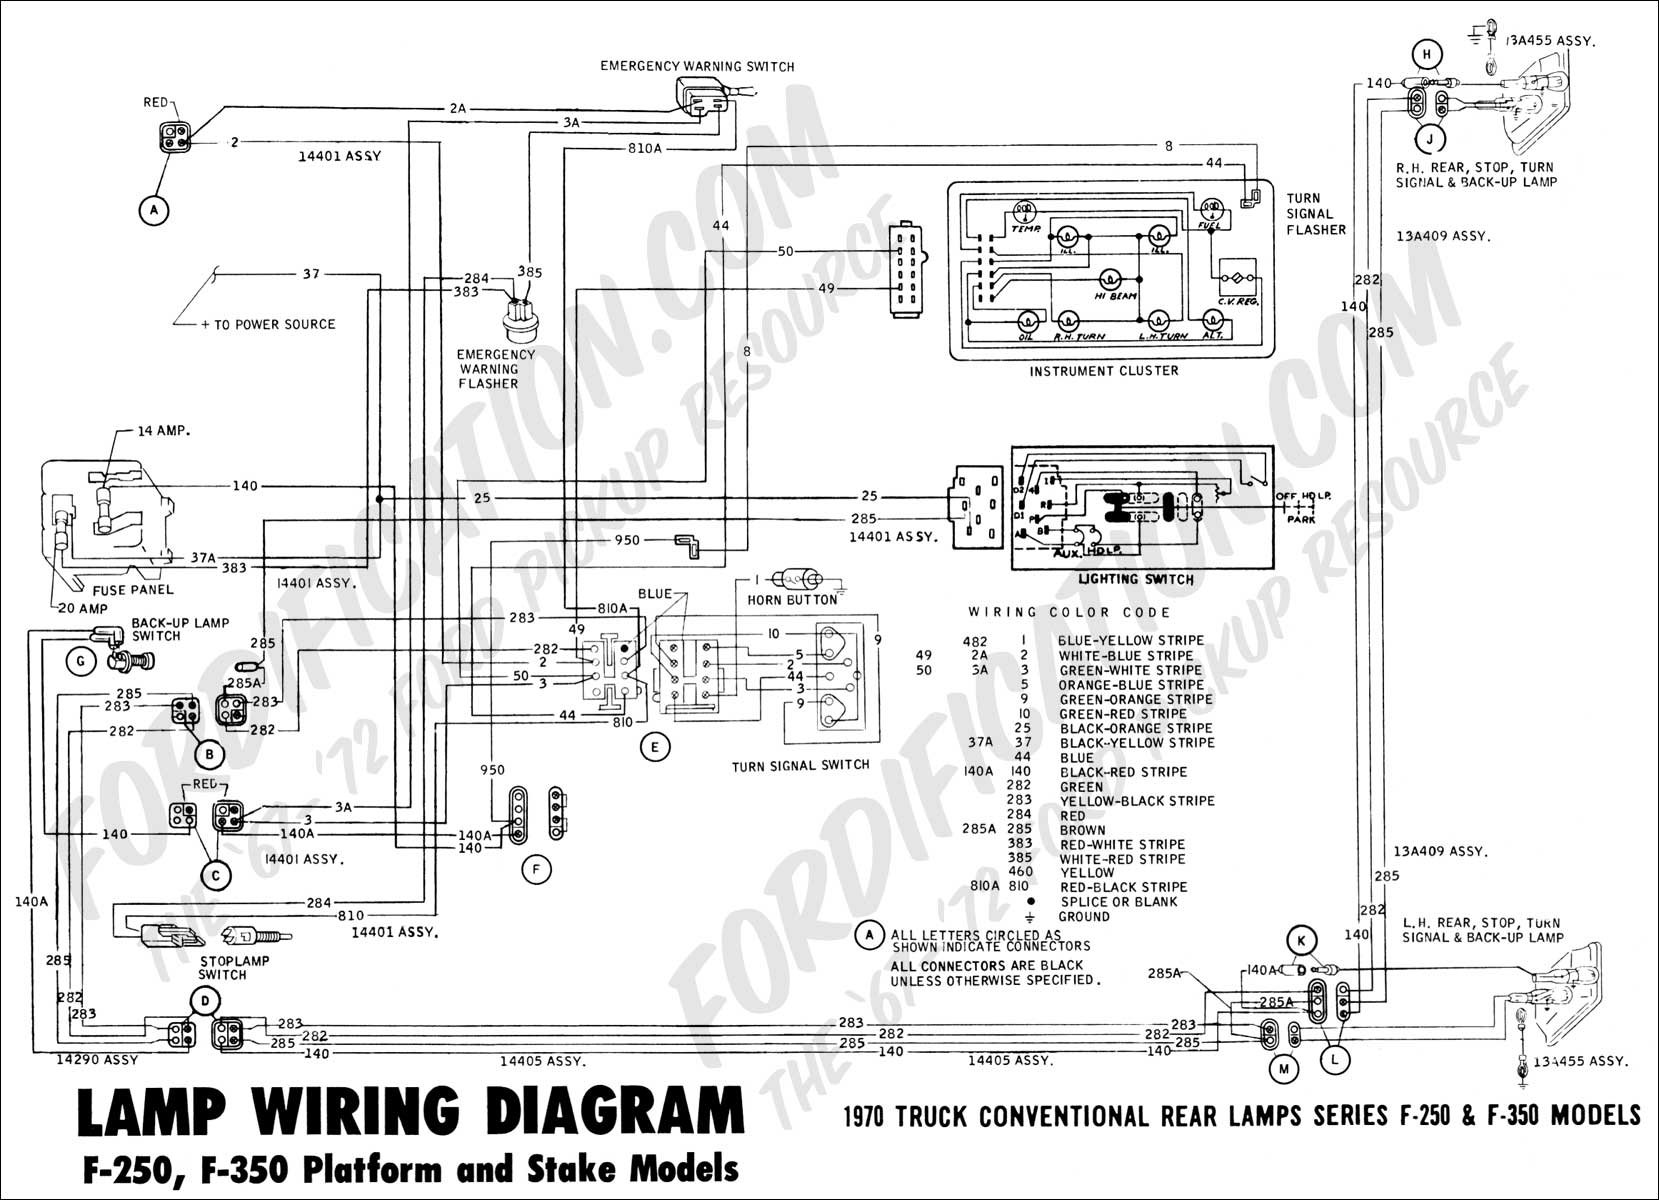 1953 Ford F100 Wiring Schematics Library Fiero Backup Light Diagrams Truck Technical Drawings And Section H Rh Fordification Com 1954 Headlight